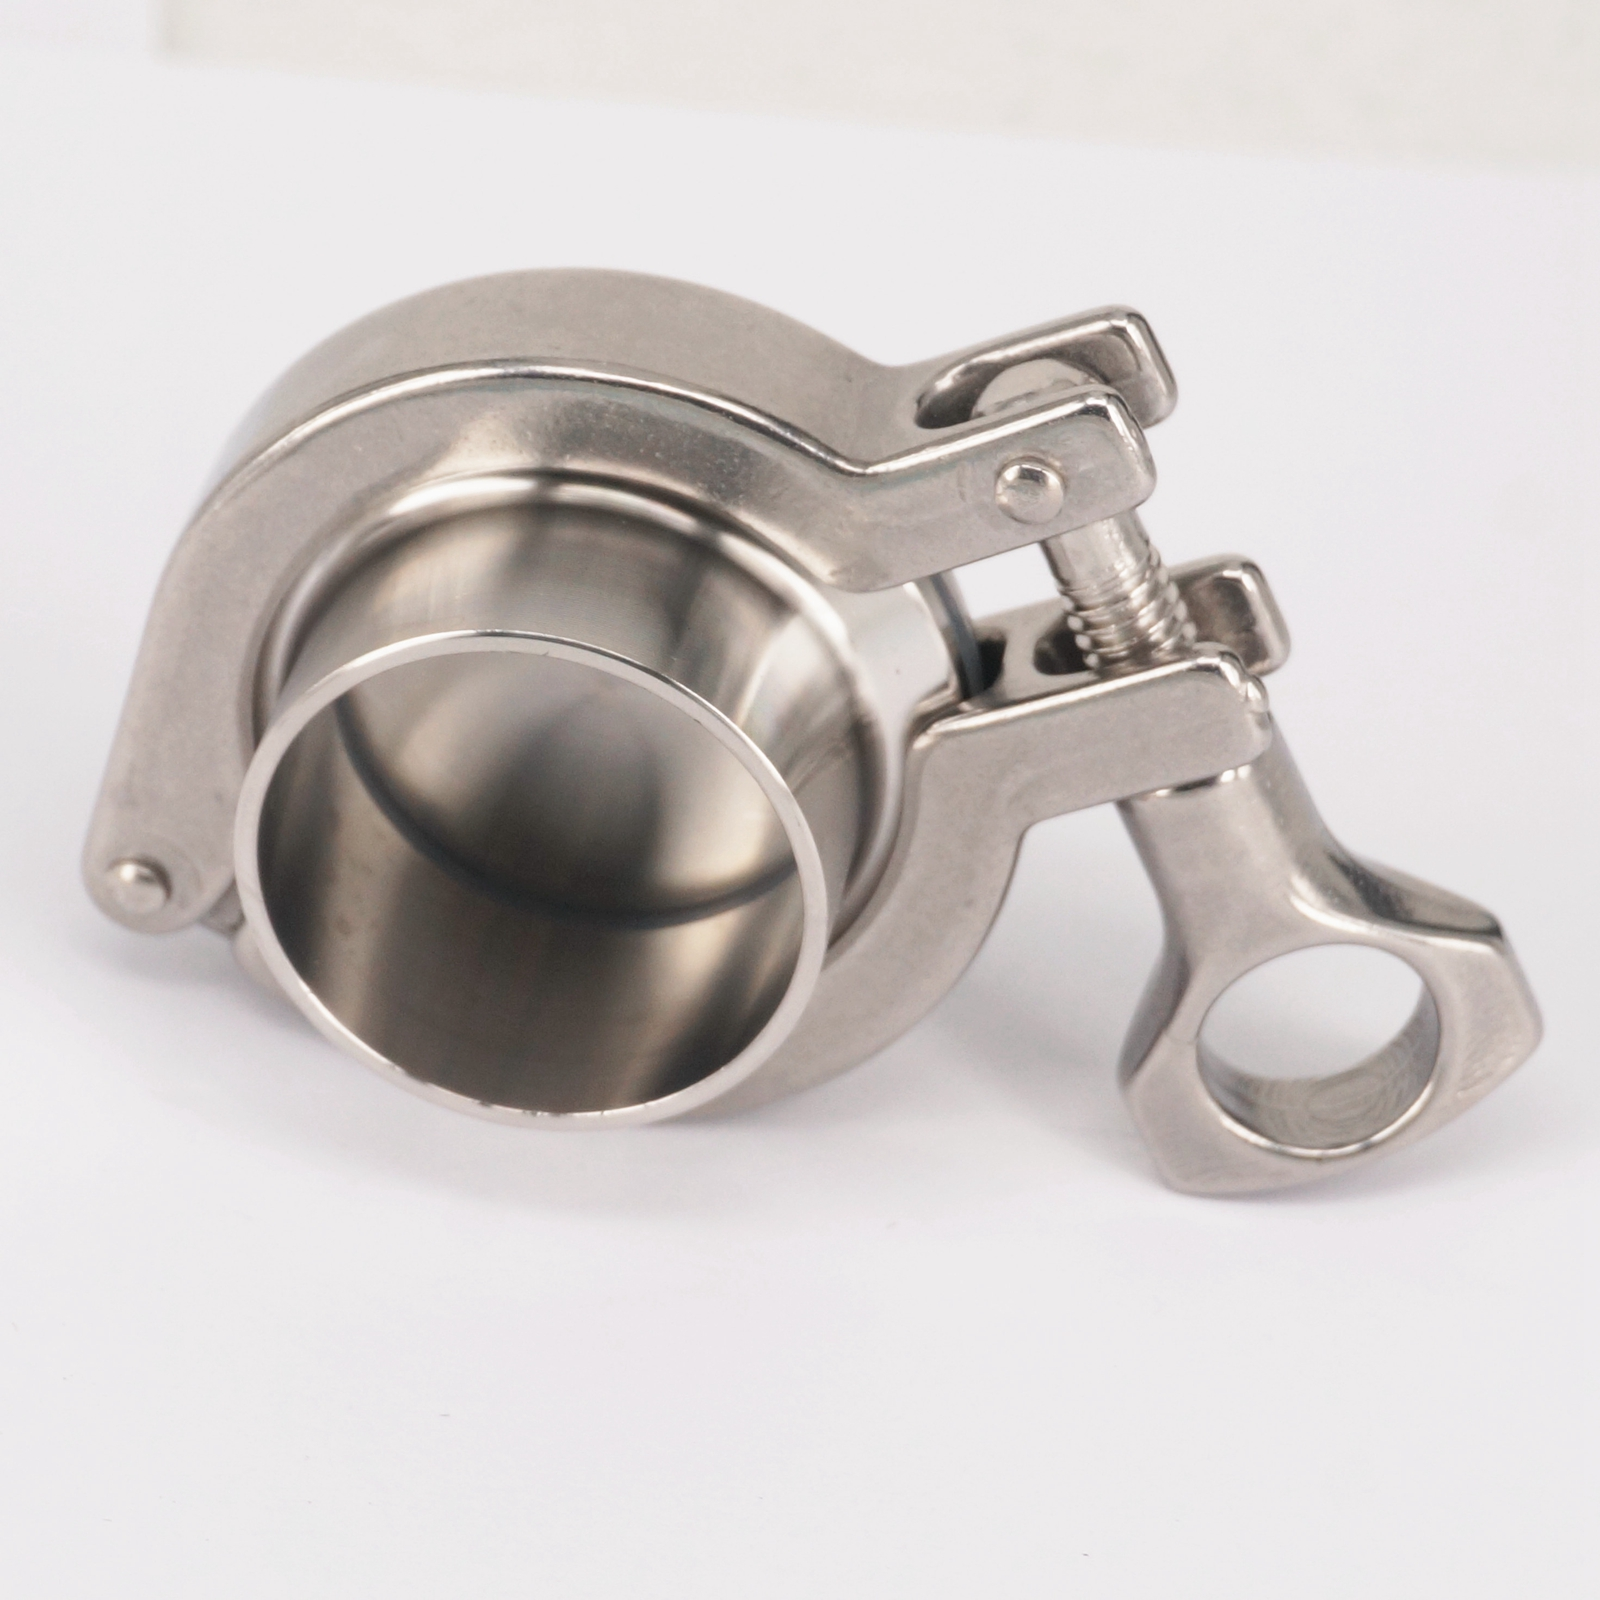 A Set 38mm Pipe OD Sanitary 1.5 Tri Clamp Weld Ferrule + Tri Clamp + Silicon Gasket + End Cap 304 Stainless steel For Homebrew